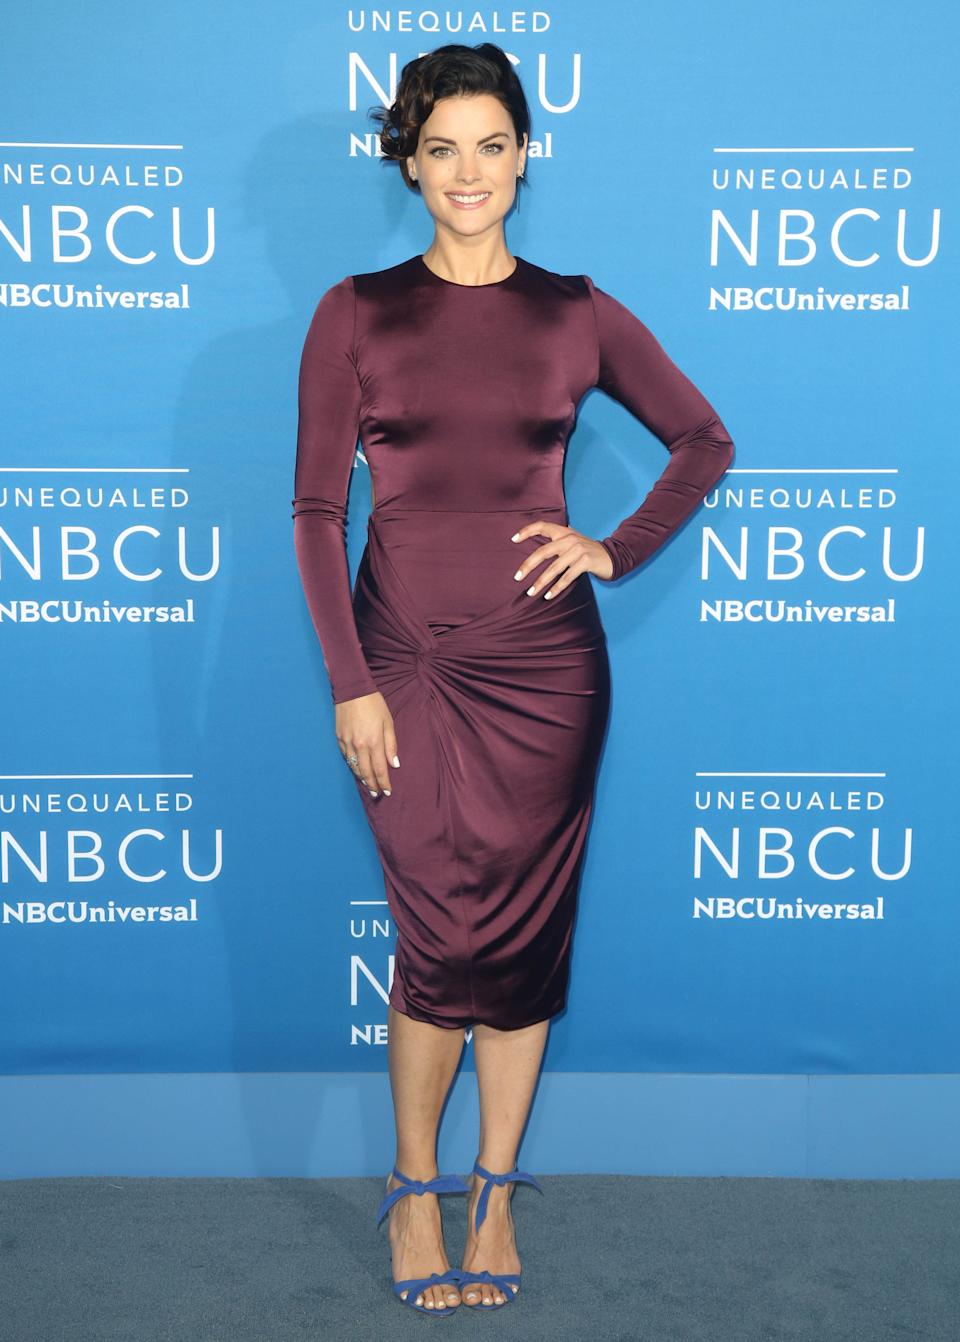 Photo by: KGC-146/STAR MAX/IPx 2017 5/15/17 Jamie Alexander at The 2017 NBCUniversal Upfront in New York City.